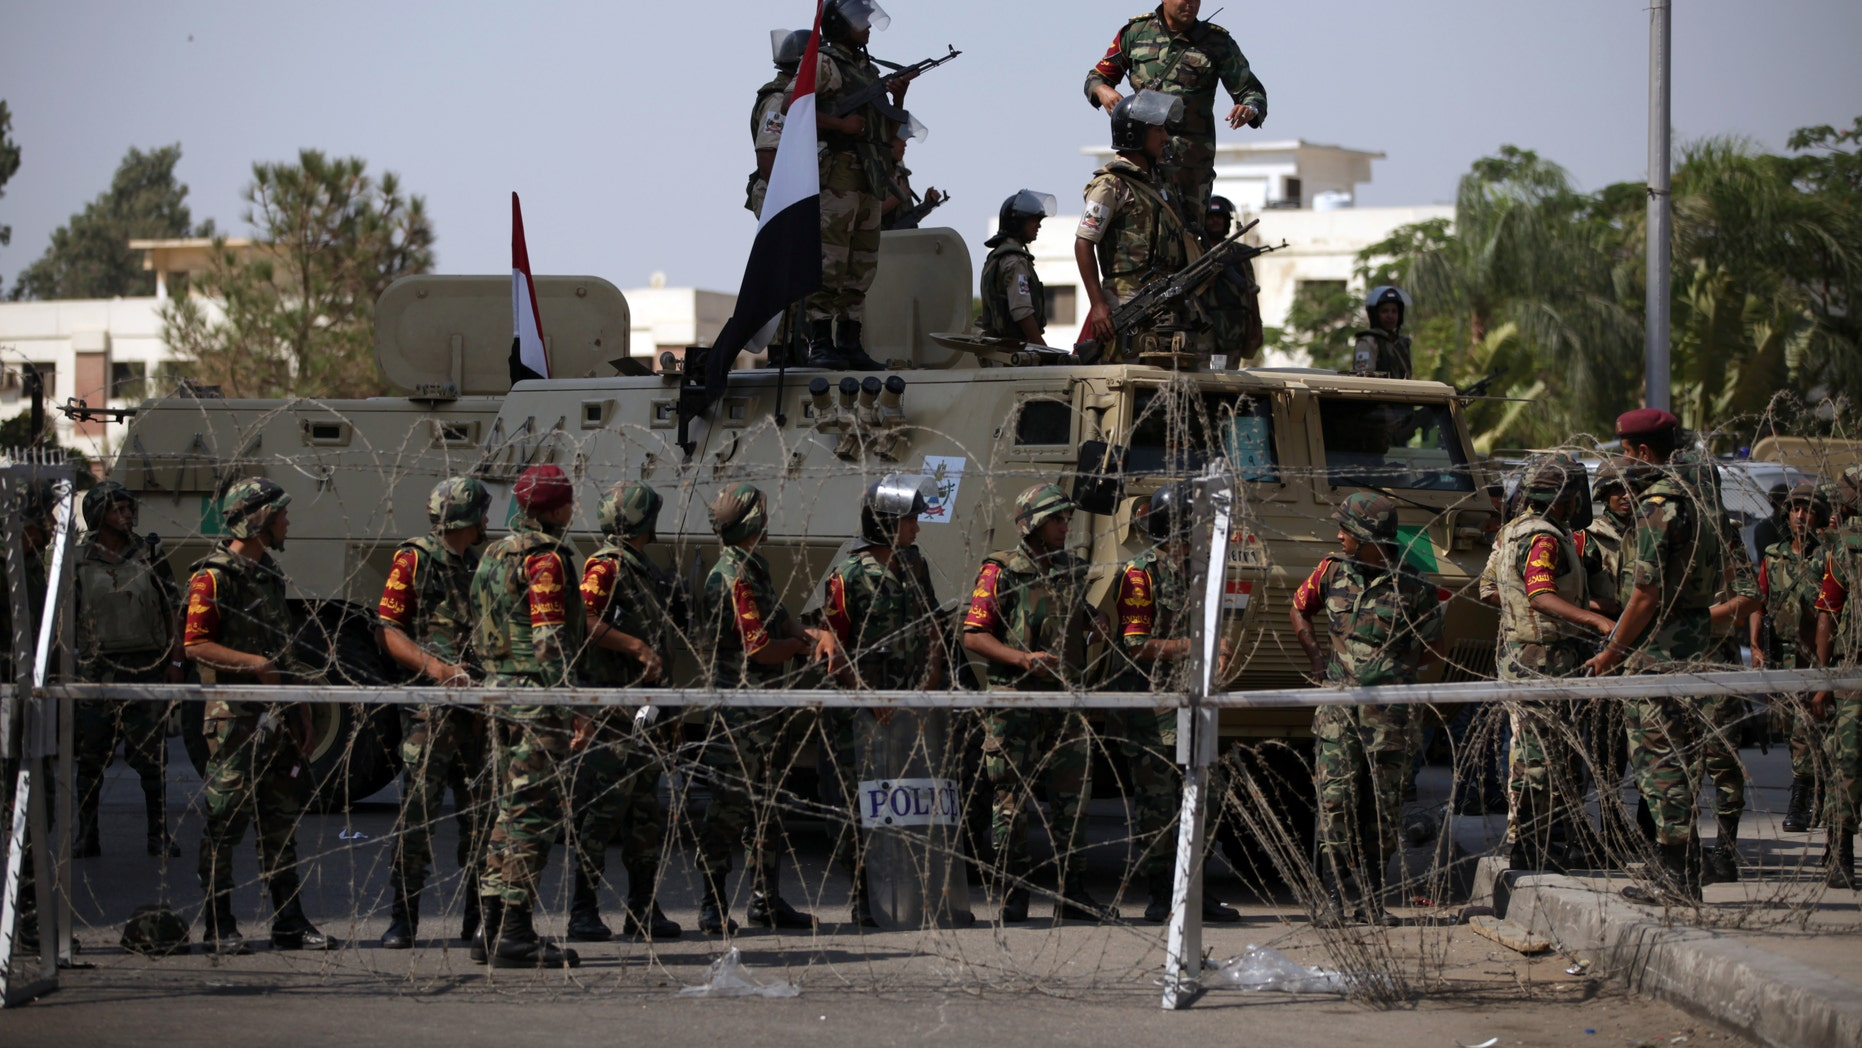 July 5, 2013 - Egyptian soldiers stand guard outside the Republican Guard building in Cairo, Egypt.